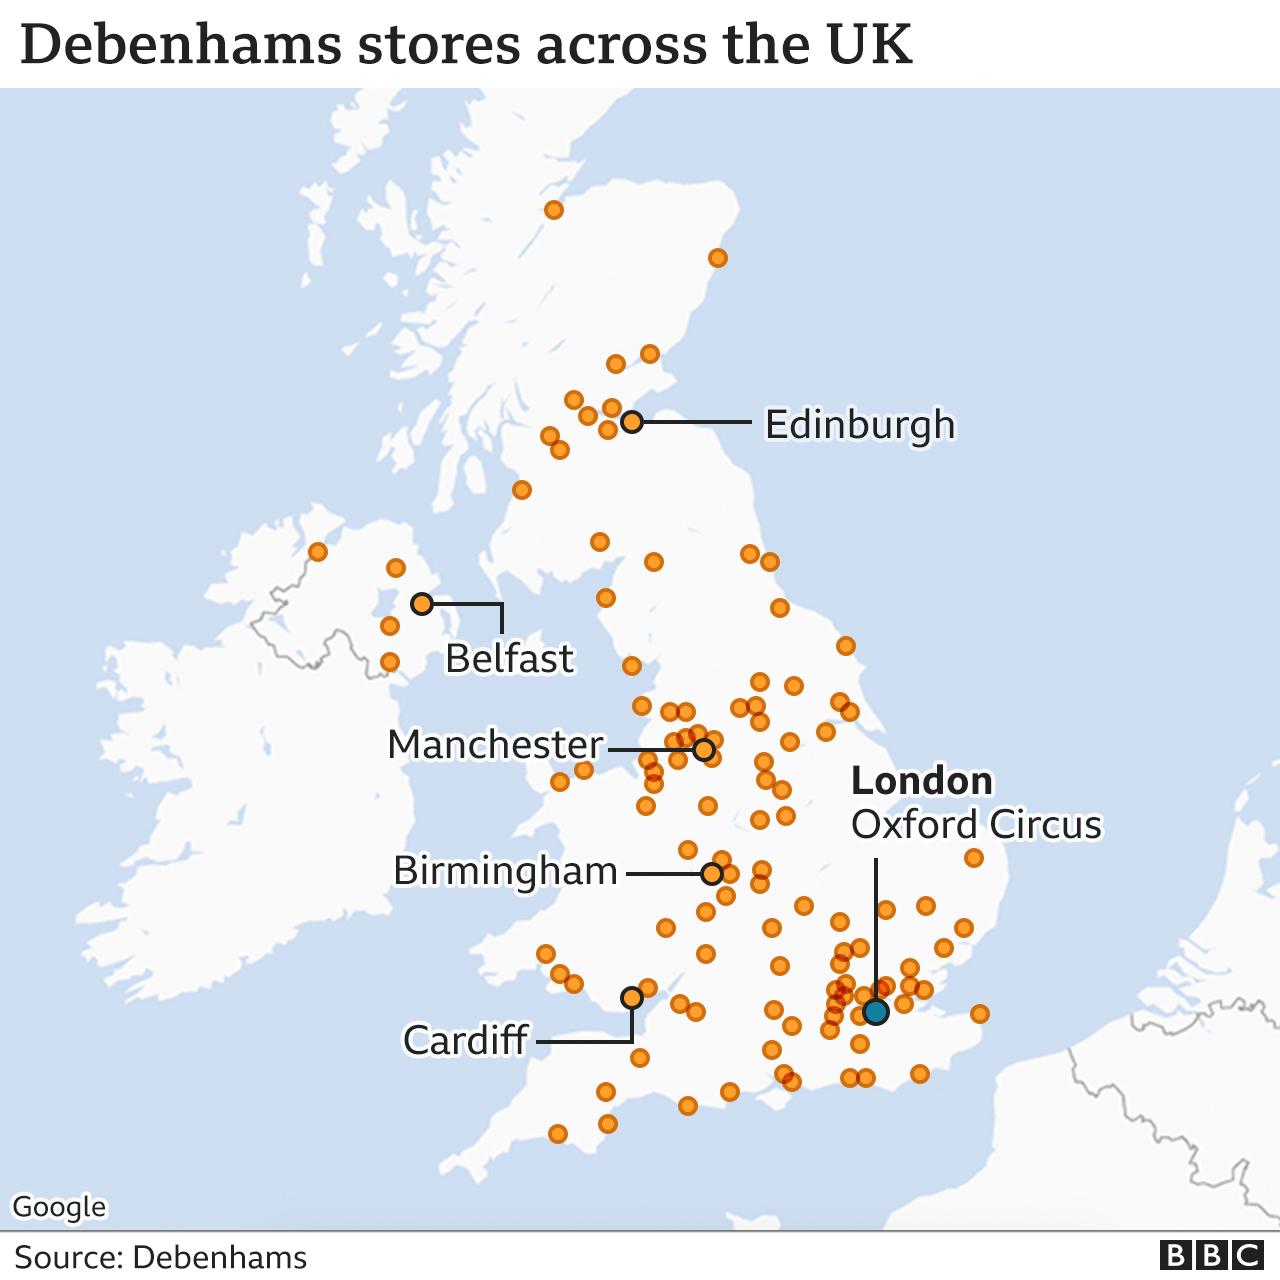 Debenhams stores map